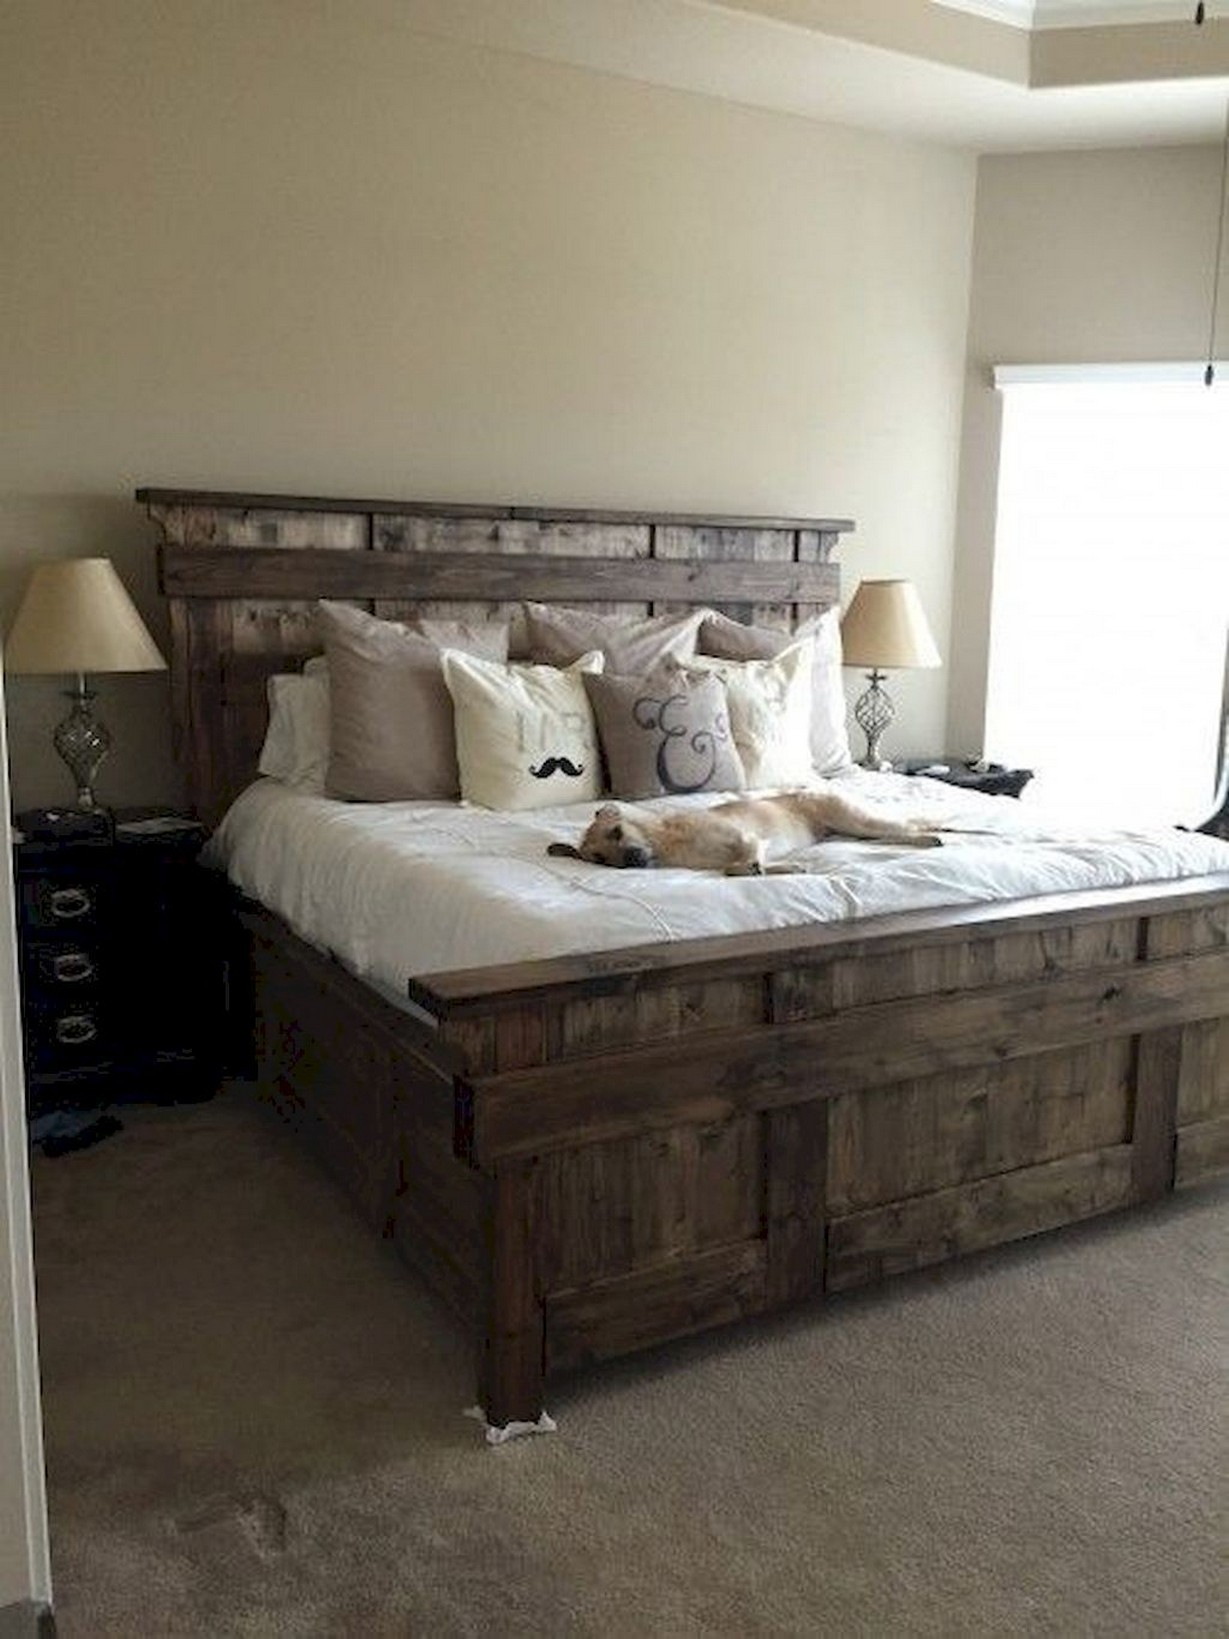 64 Rustic Bedroom Furniture How to Look Elegance Home Decor 60